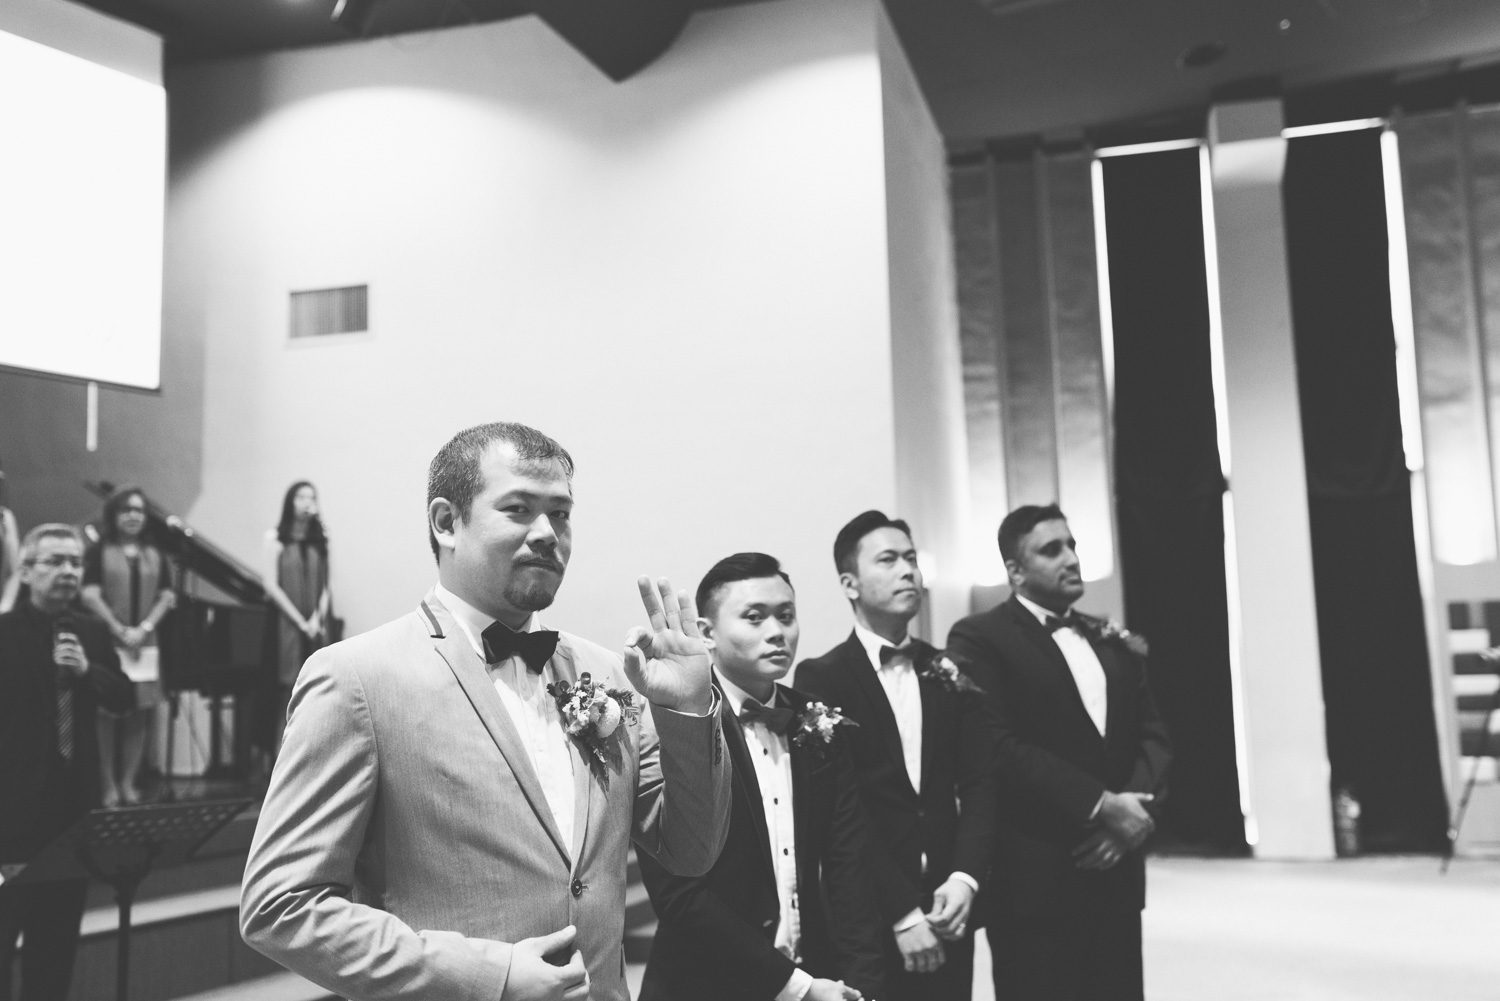 luther-center-kuala-lumpur-wedding-church-first-look-candid